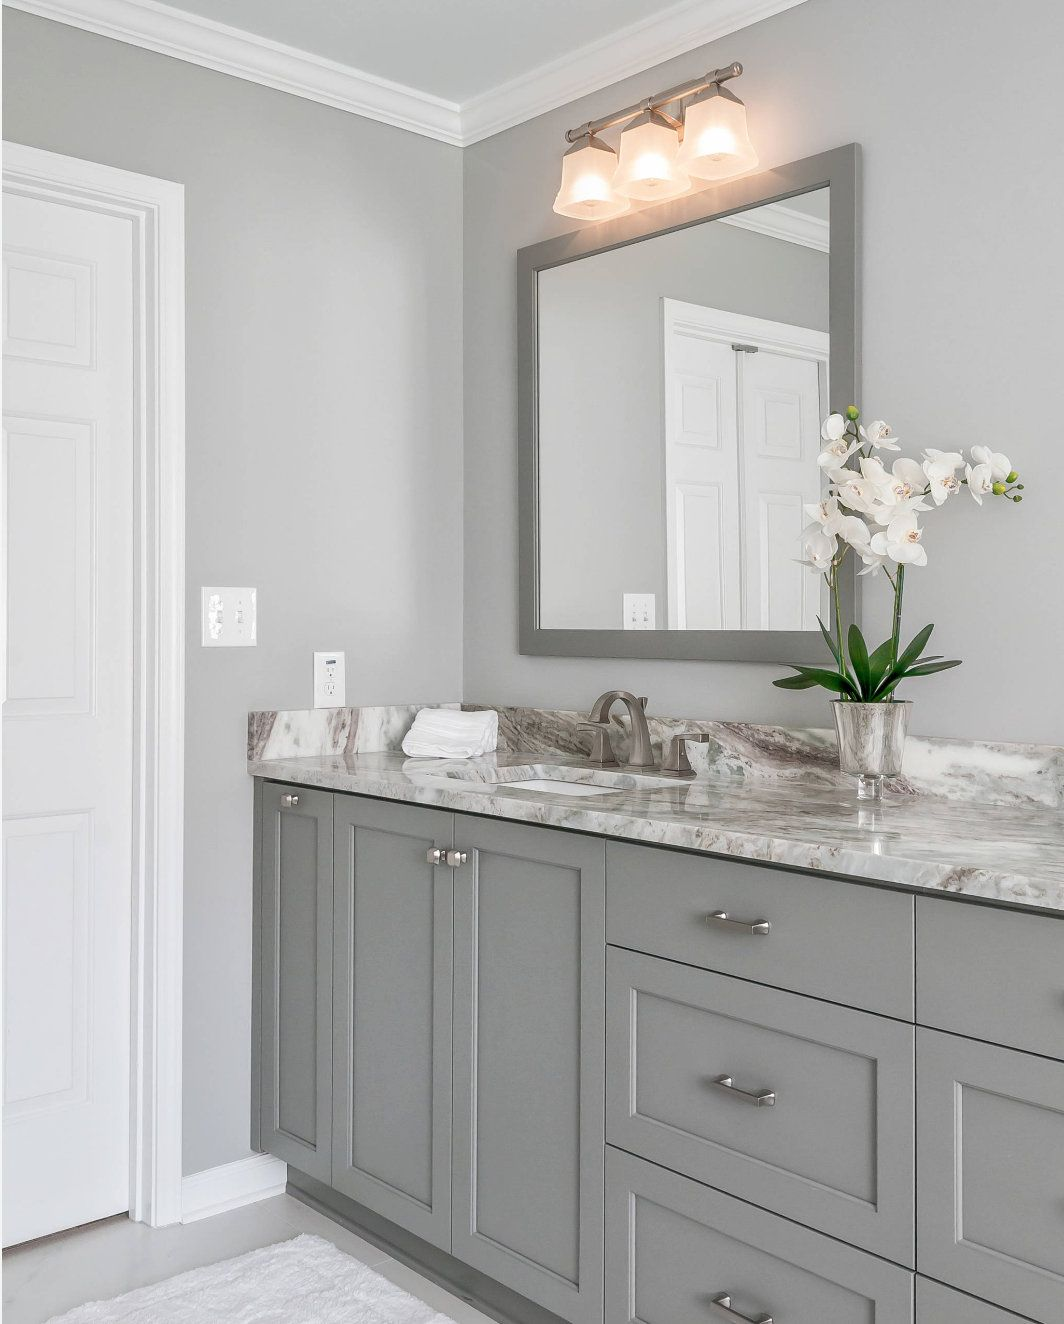 Sherwin Williams Light French Gray: Color Spotlight